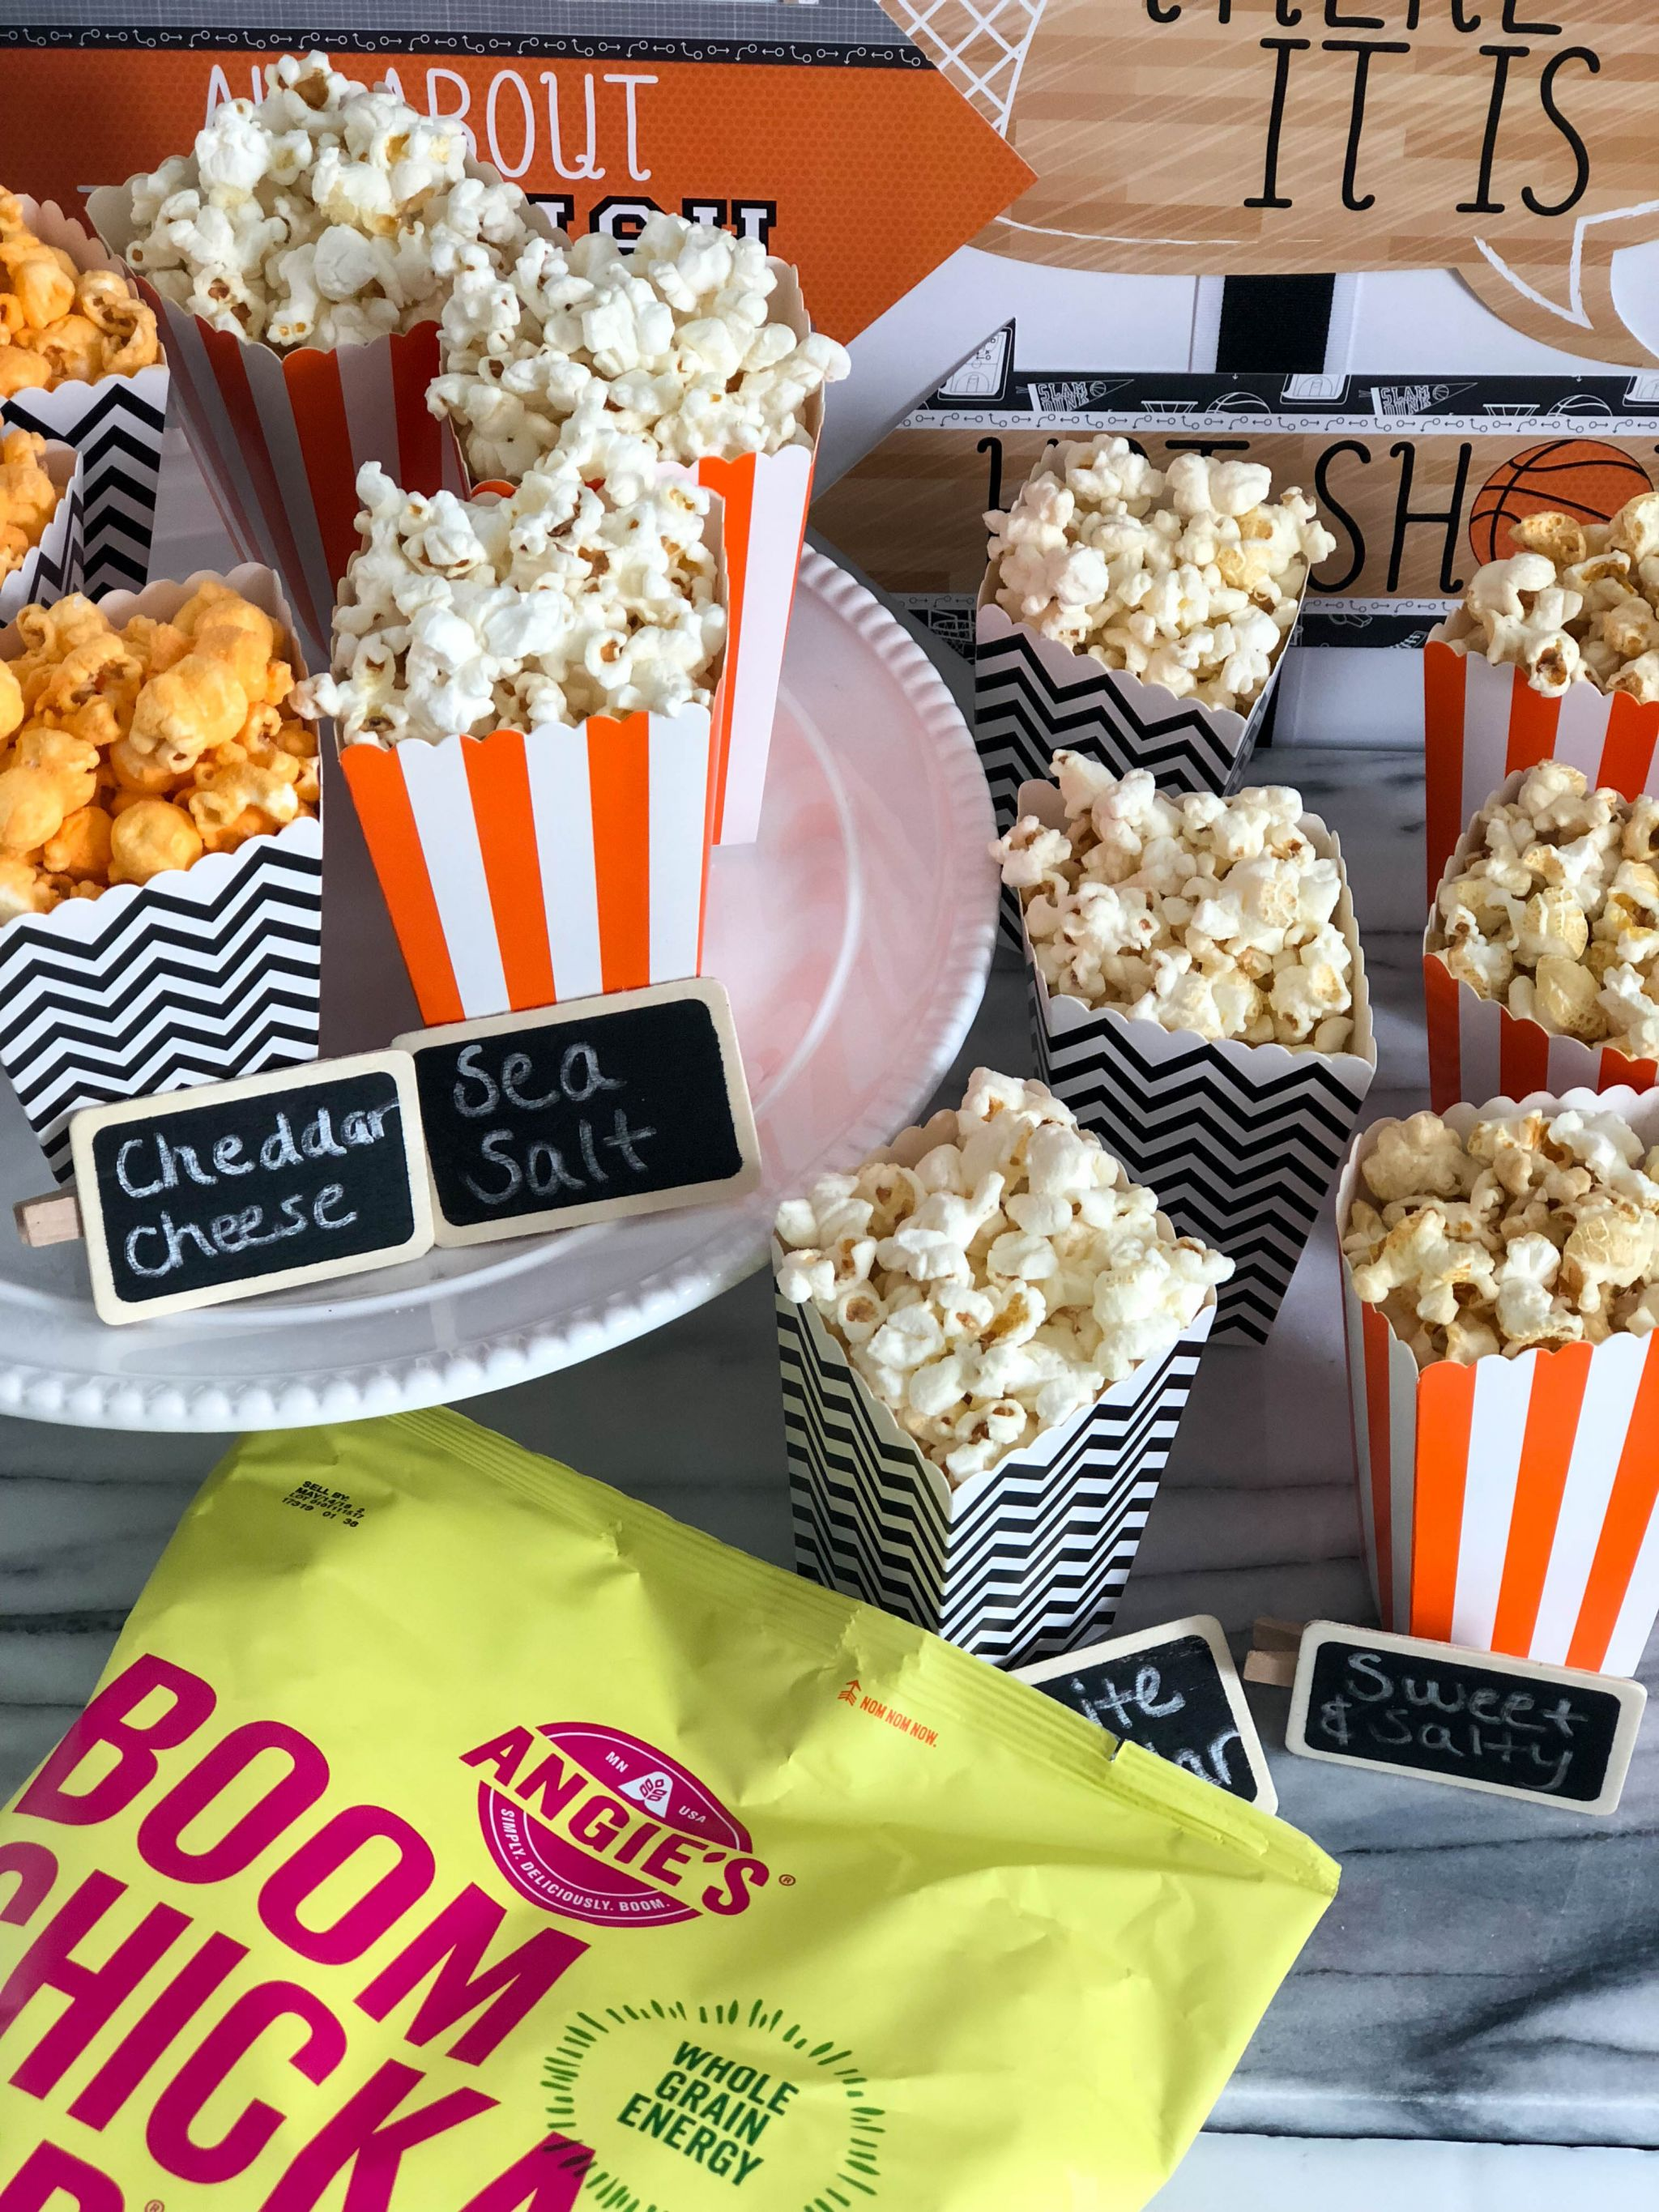 Basketball Game Day Popcorn Bar With Angie S Boomchickapop Game Day Snack Ideas Popcorn Bar Easy Snack Ideas Easy Entertaining 19 Boston Chic Party